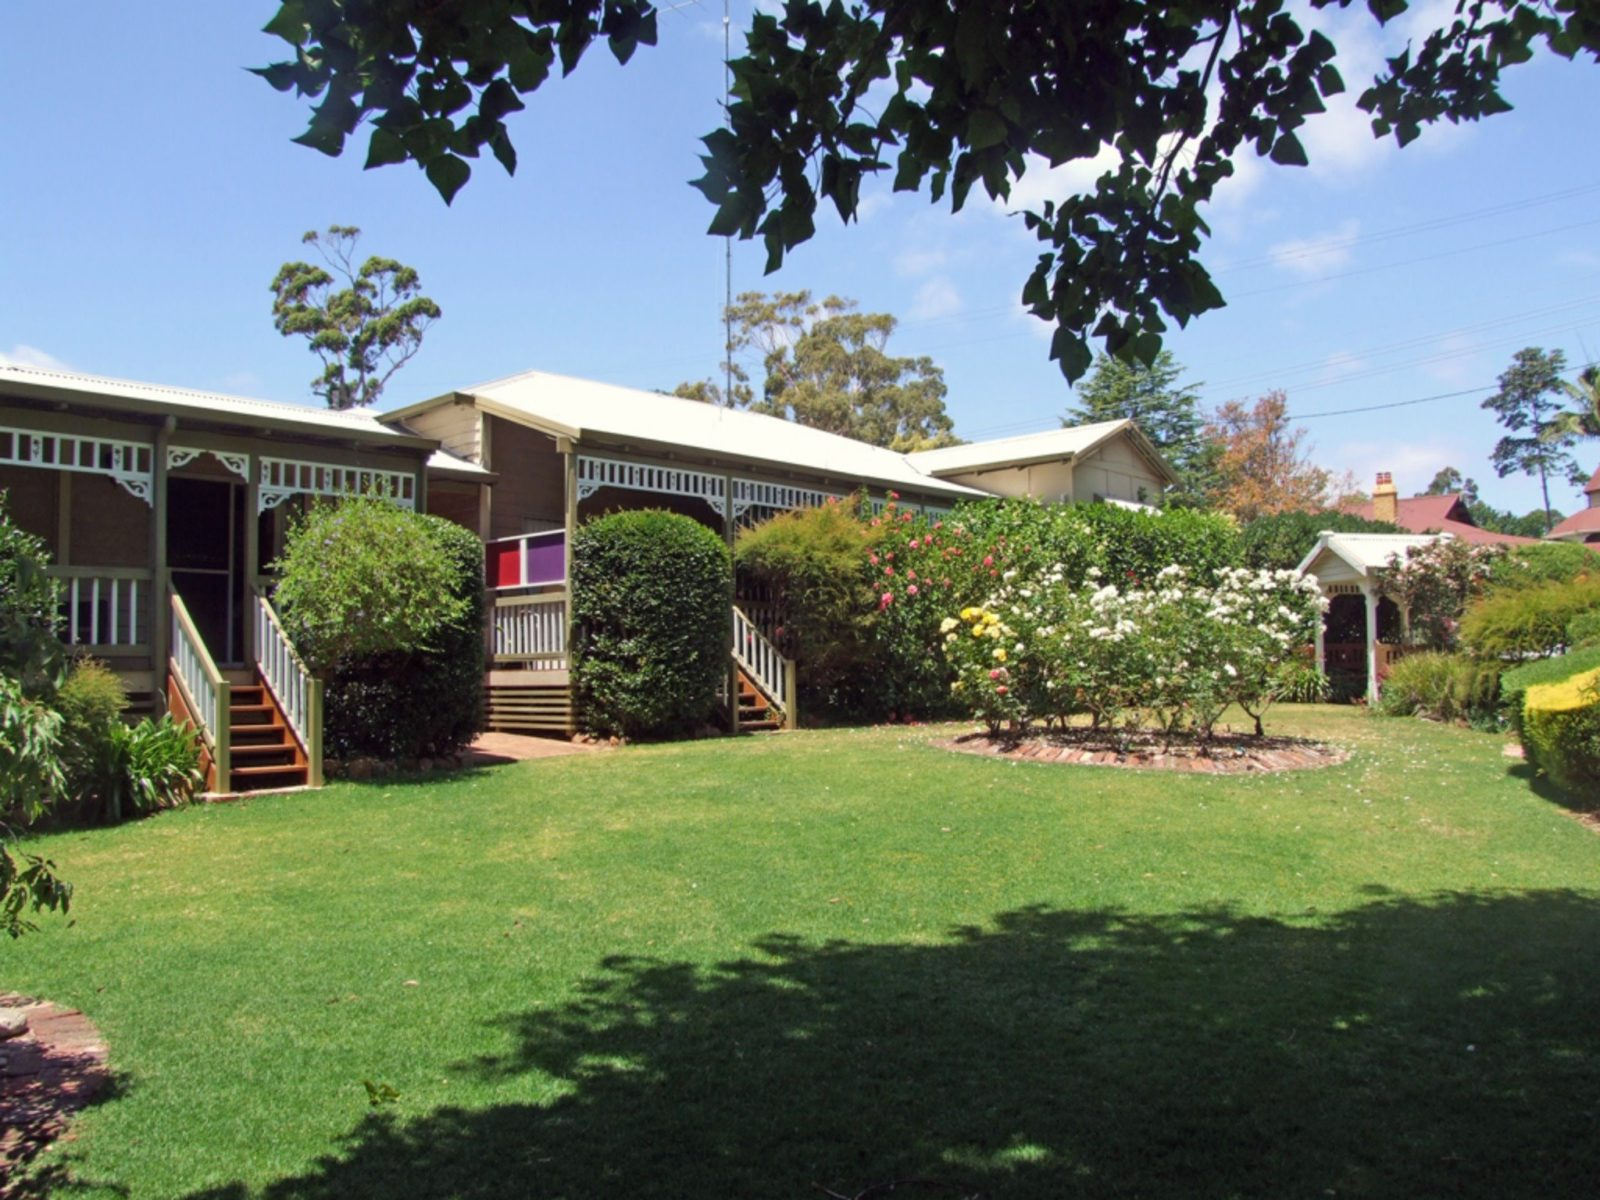 Adamsons Riverside Accommodation, Margaret River, Western Australia